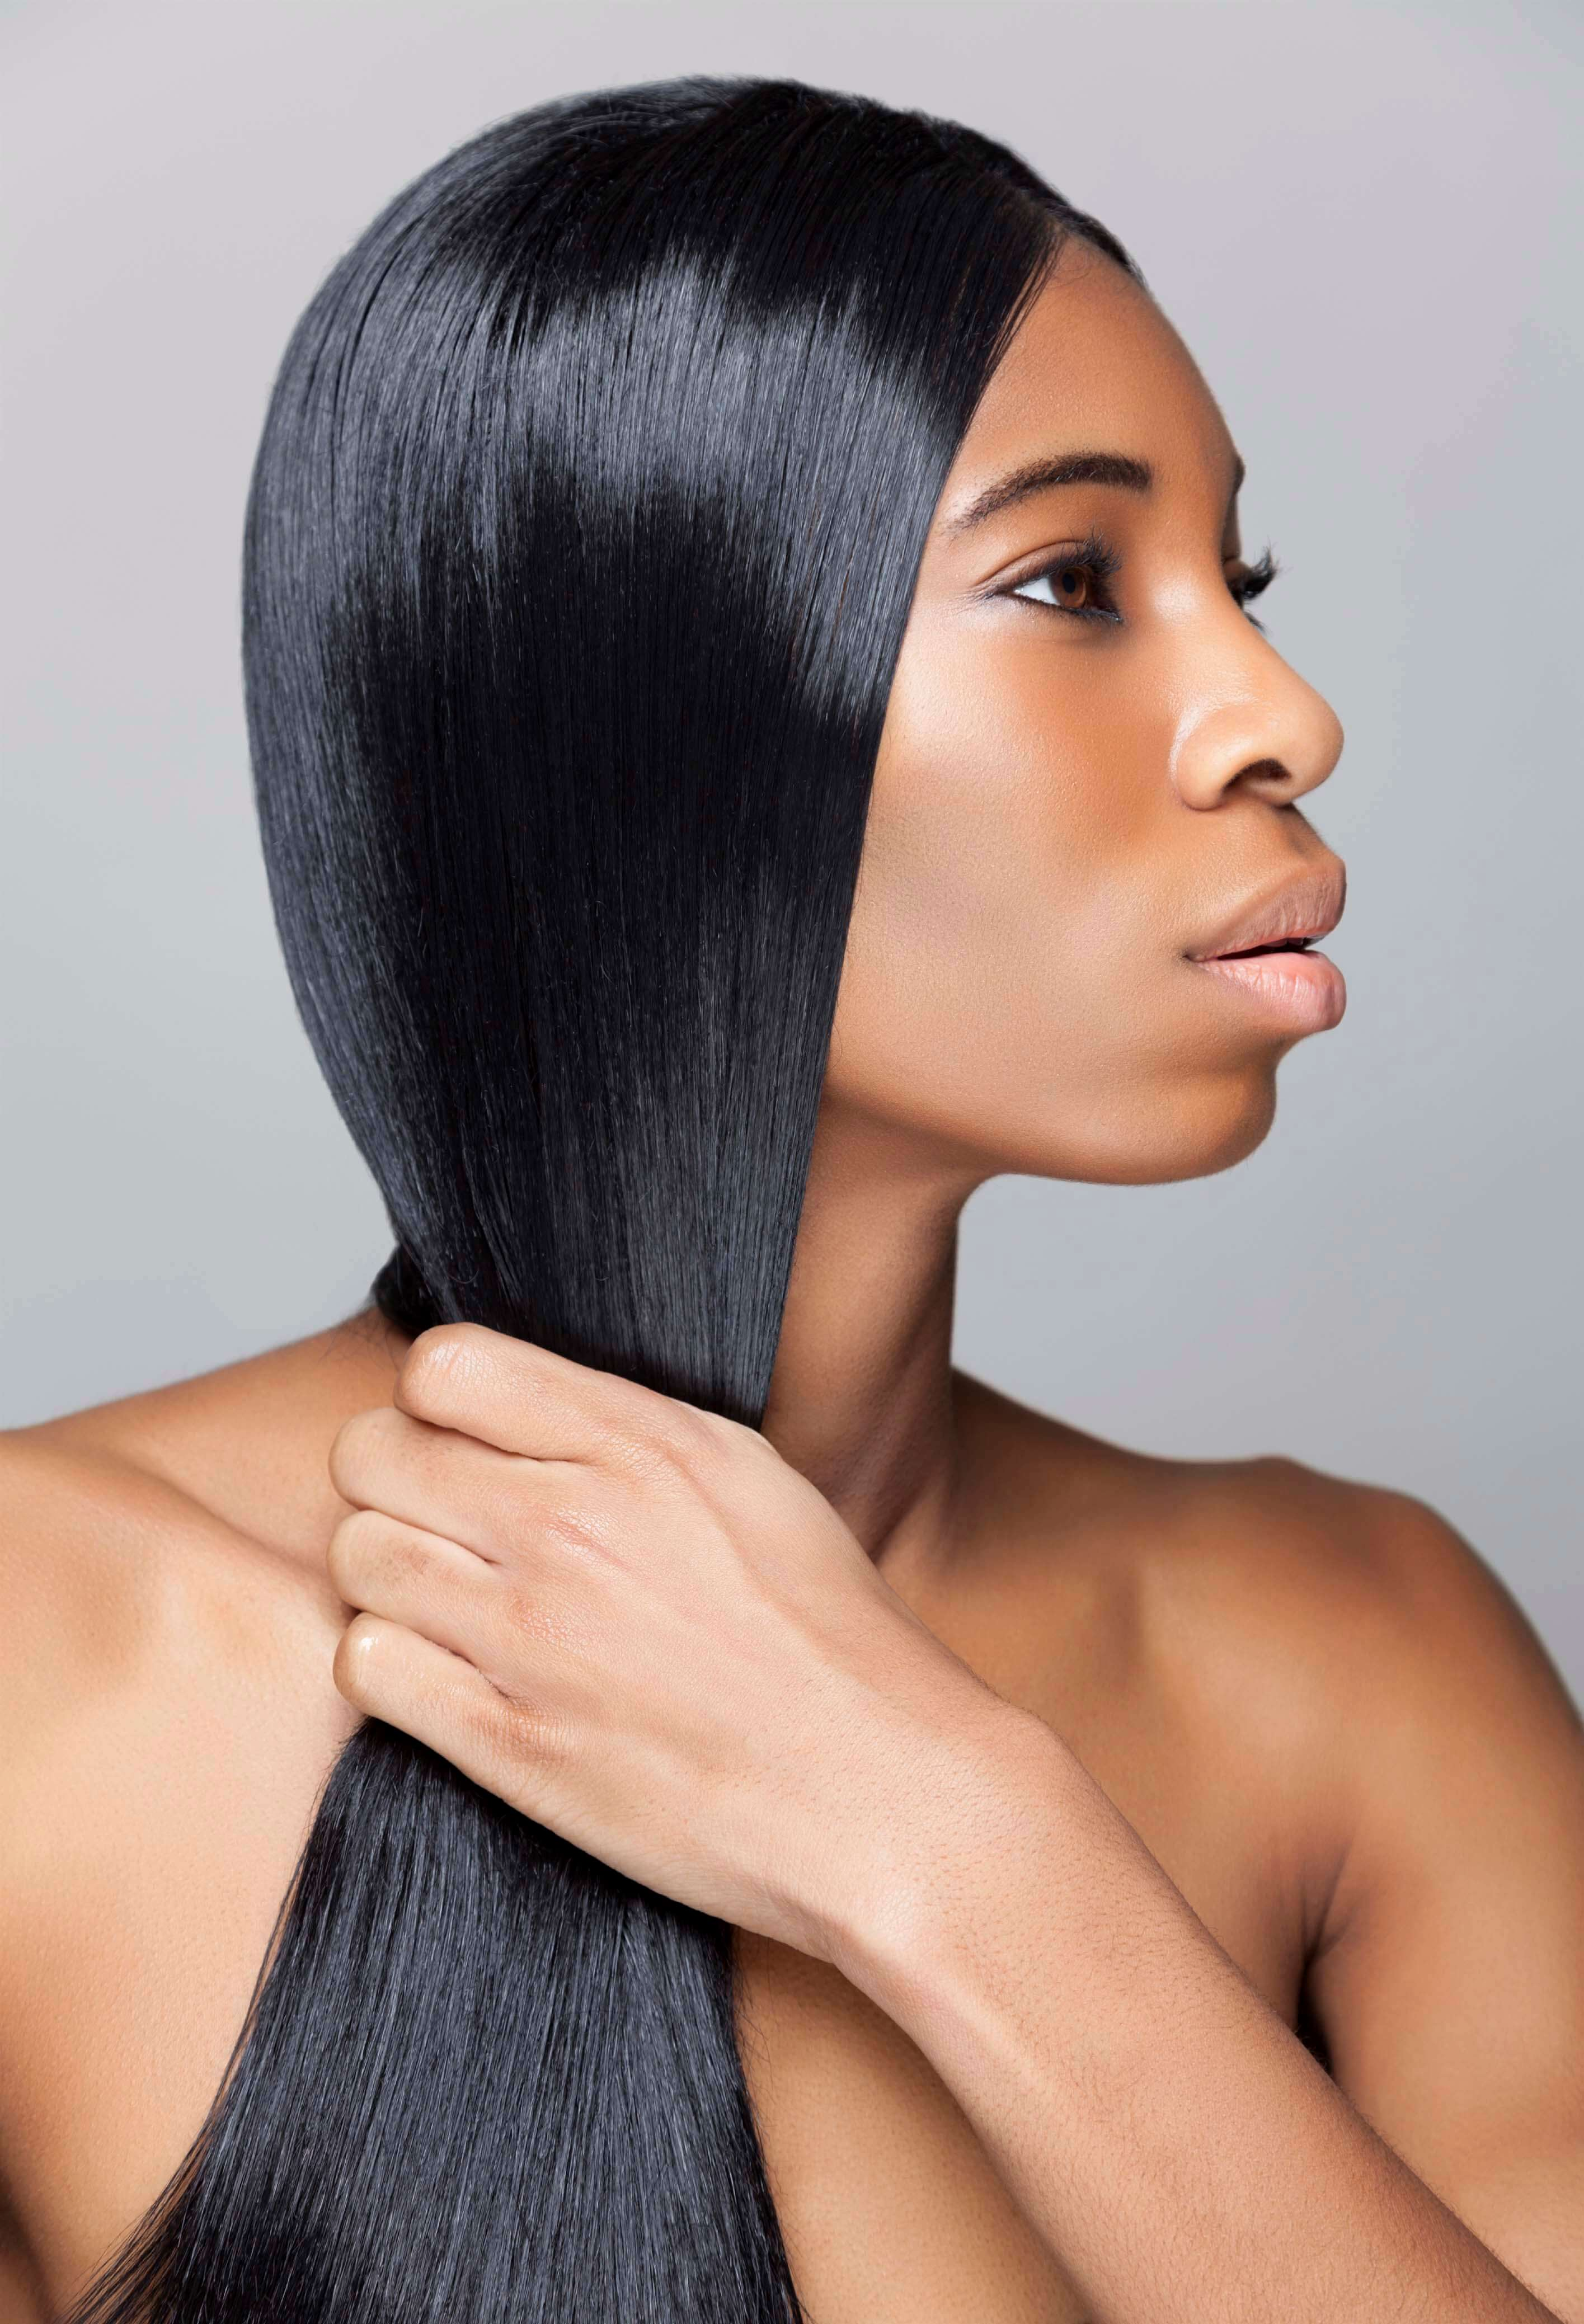 Taking care of relaxed hair: Our top 5 tips